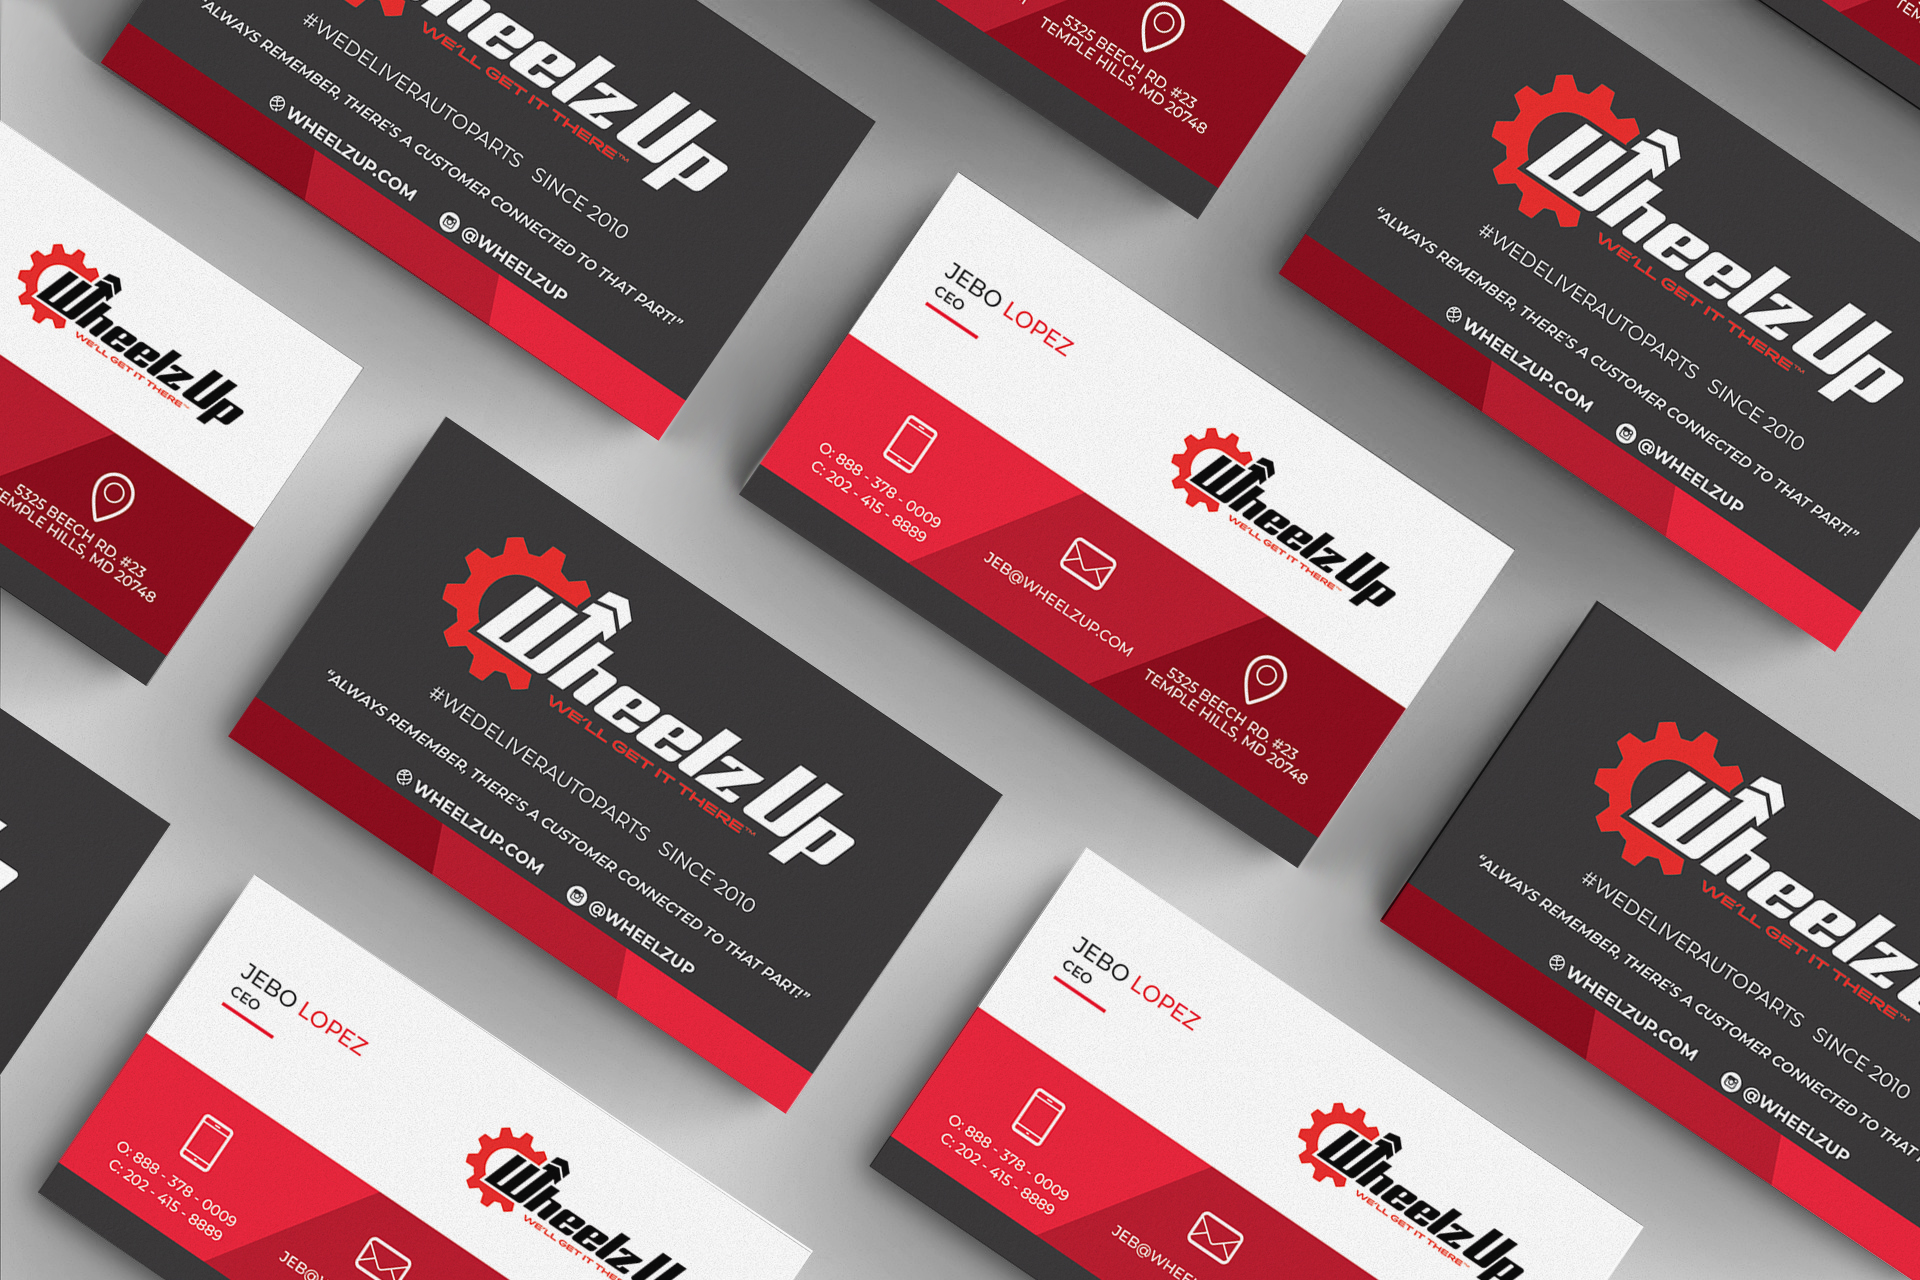 WheelzUp_Business Card Mockup